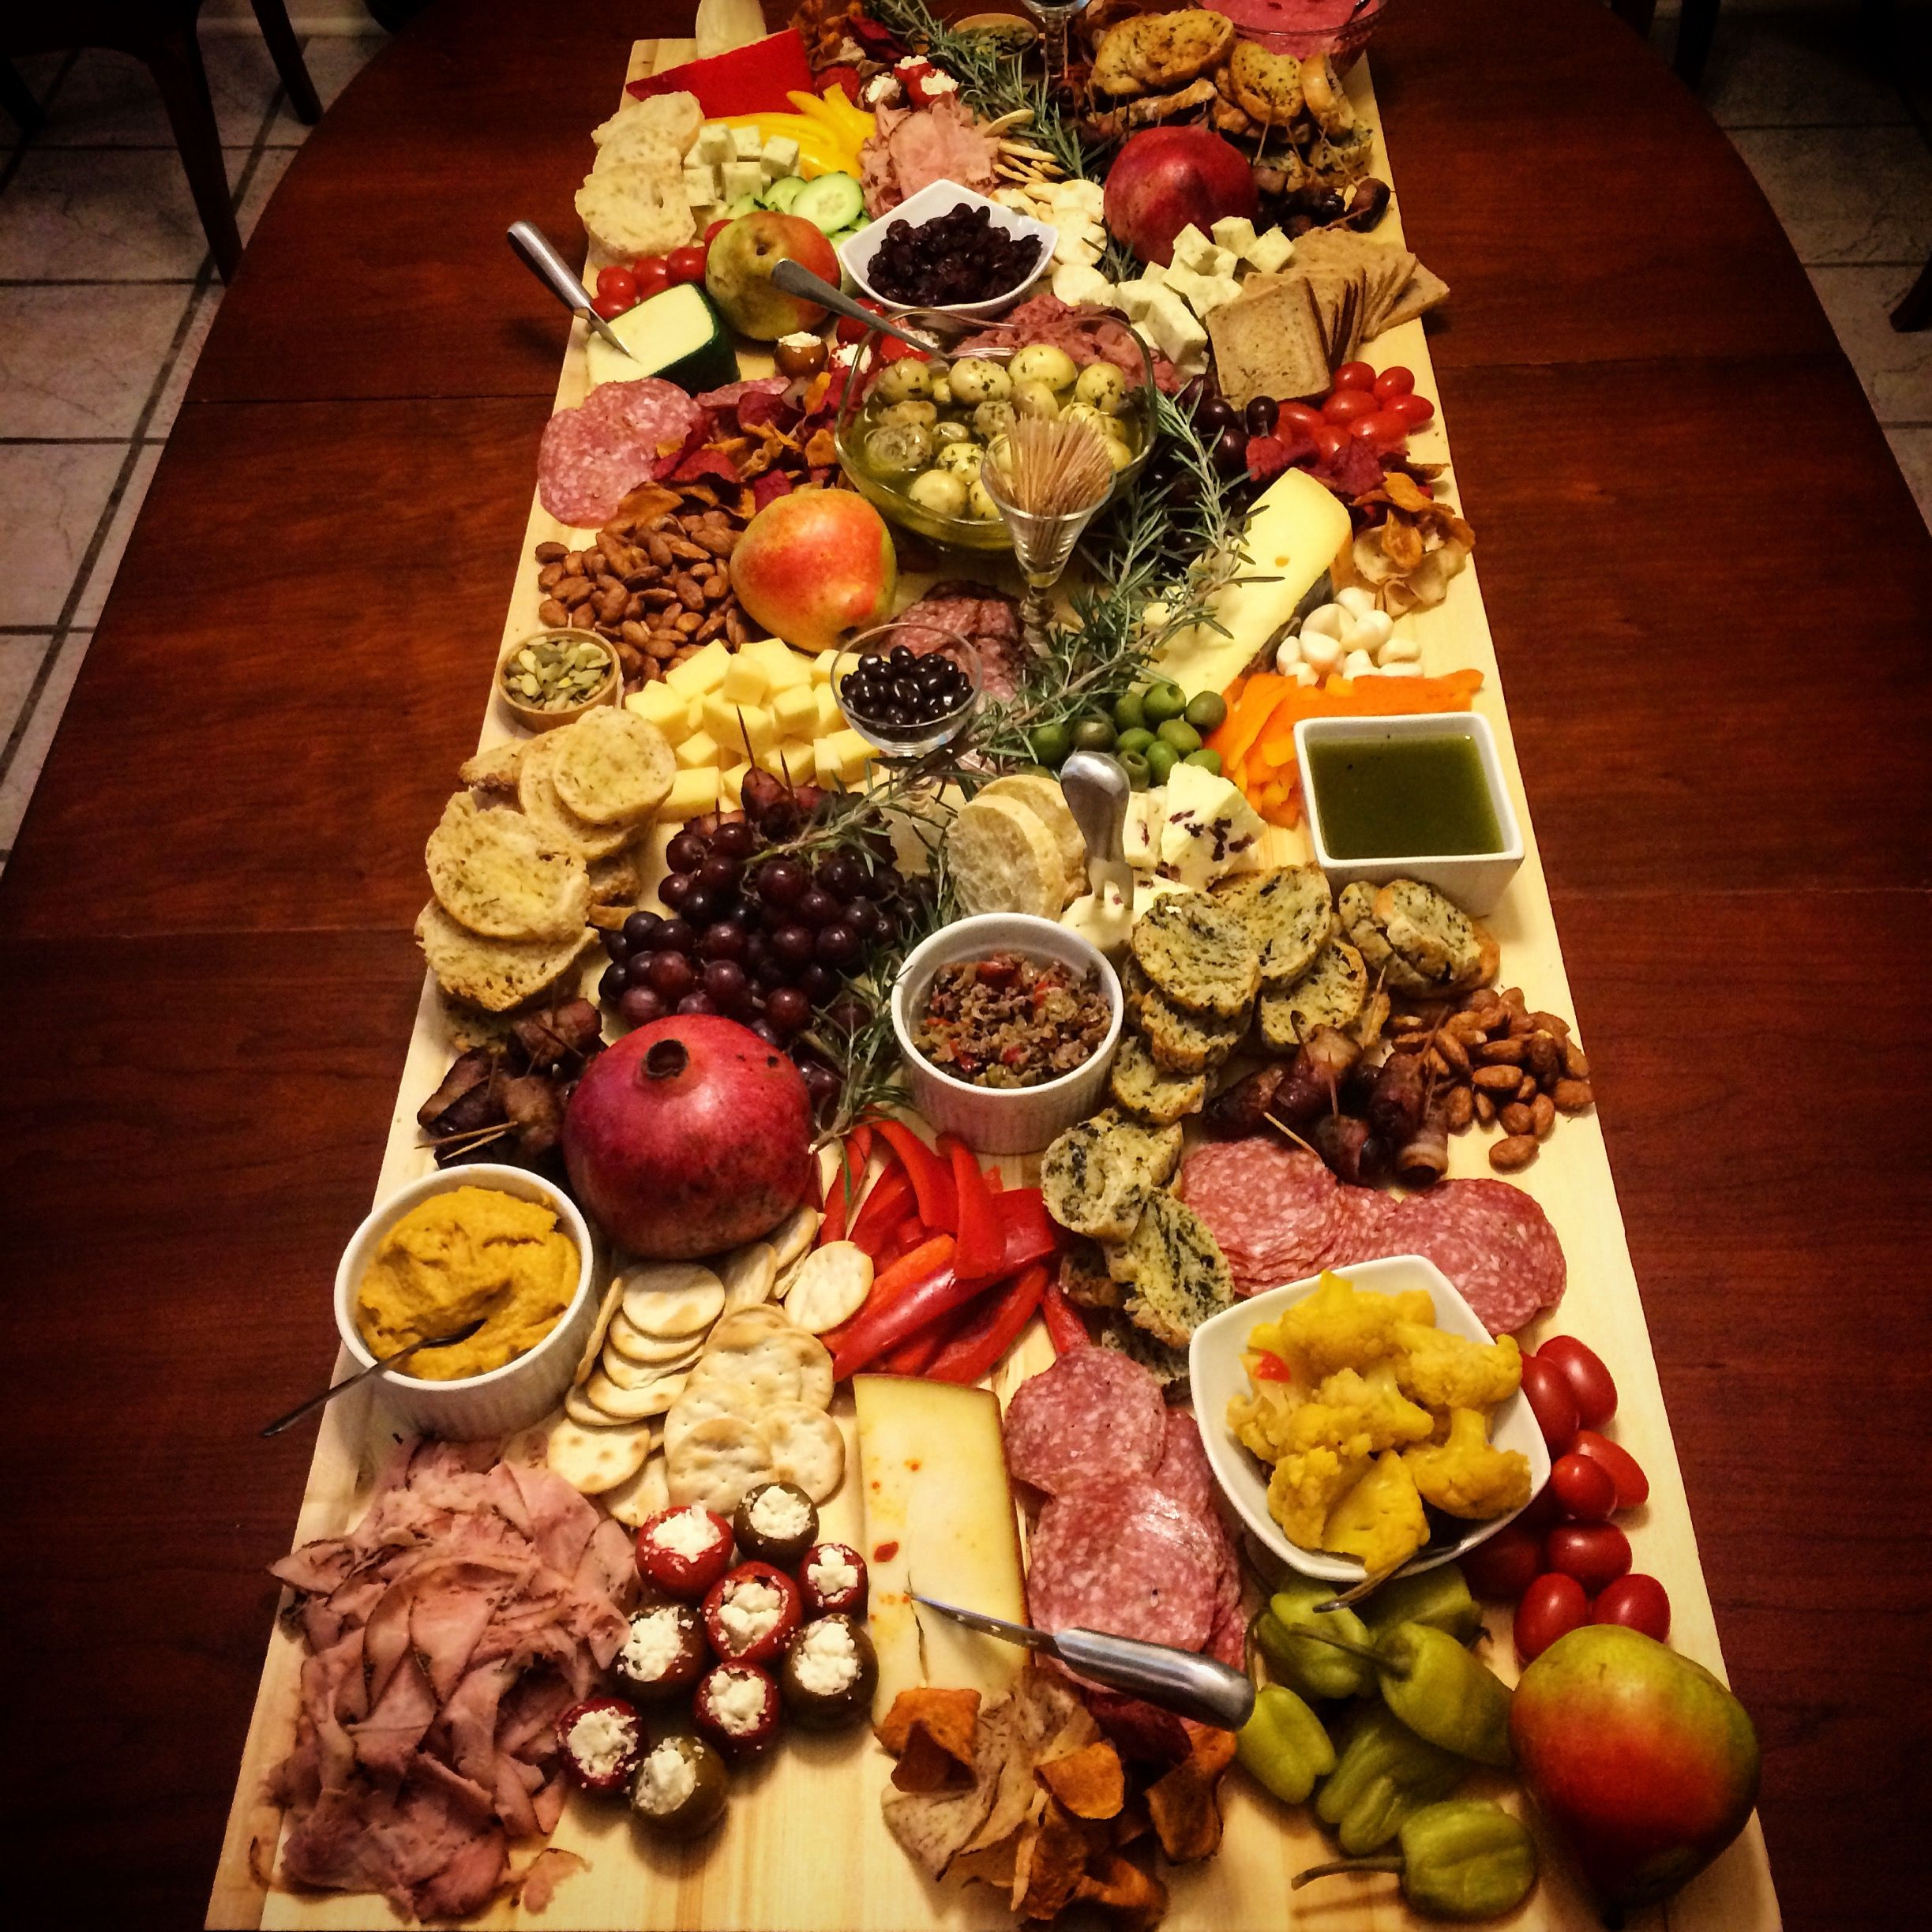 Cheese Board Ideas Pictures: Love This Giant Antipasto Platter / Cheese Board / Grazing